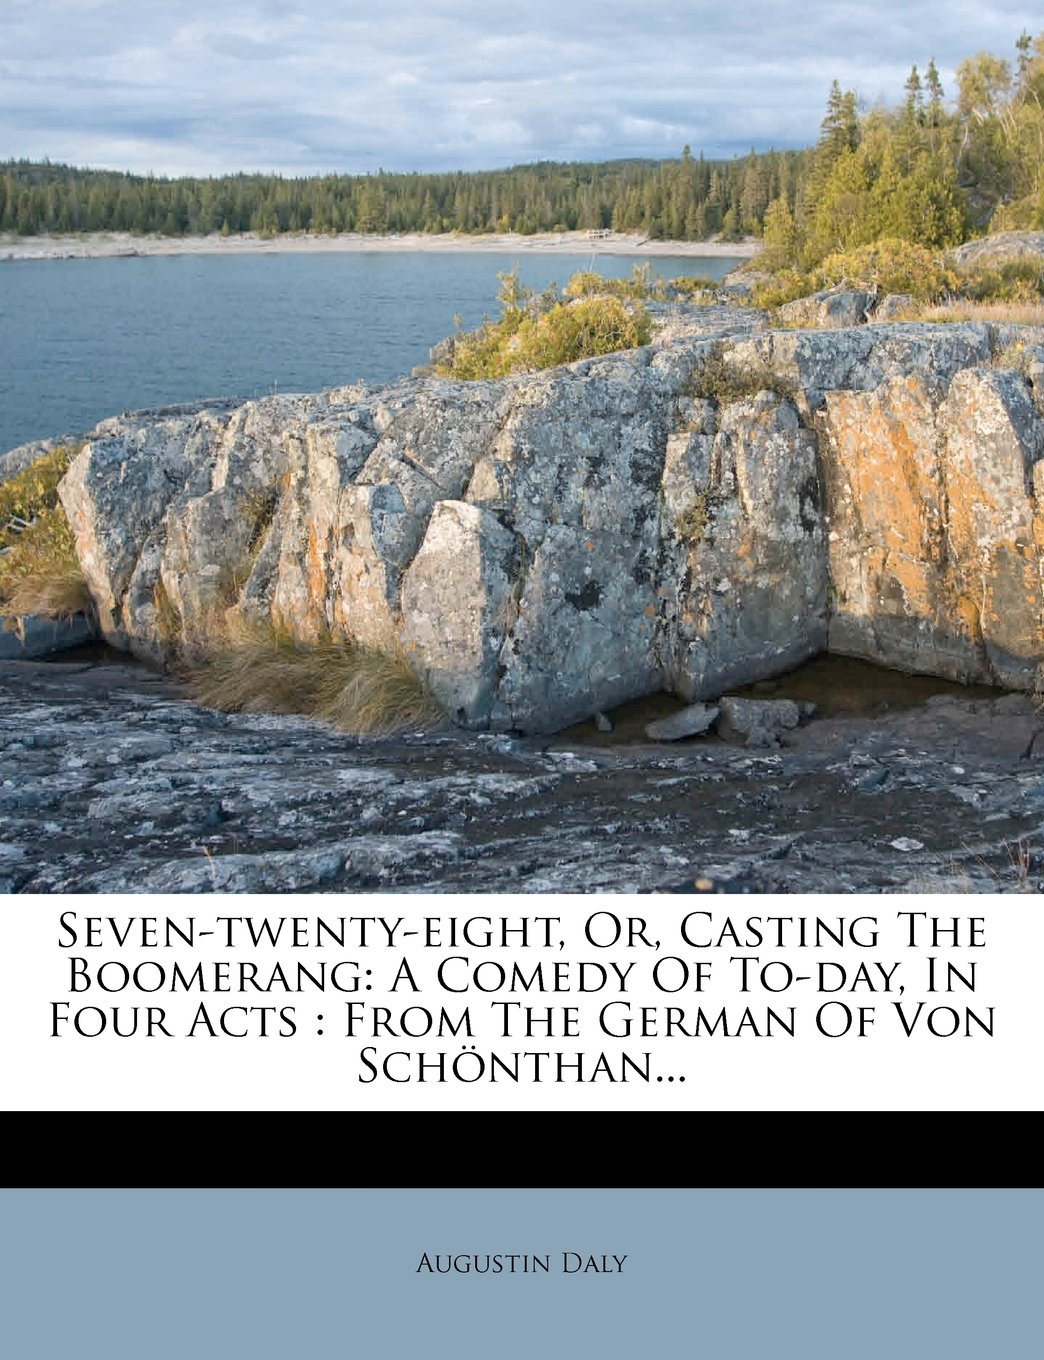 Seven-twenty-eight, Or, Casting The Boomerang: A Comedy Of To-day, In Four Acts : From The German Of Von Schönthan... pdf epub